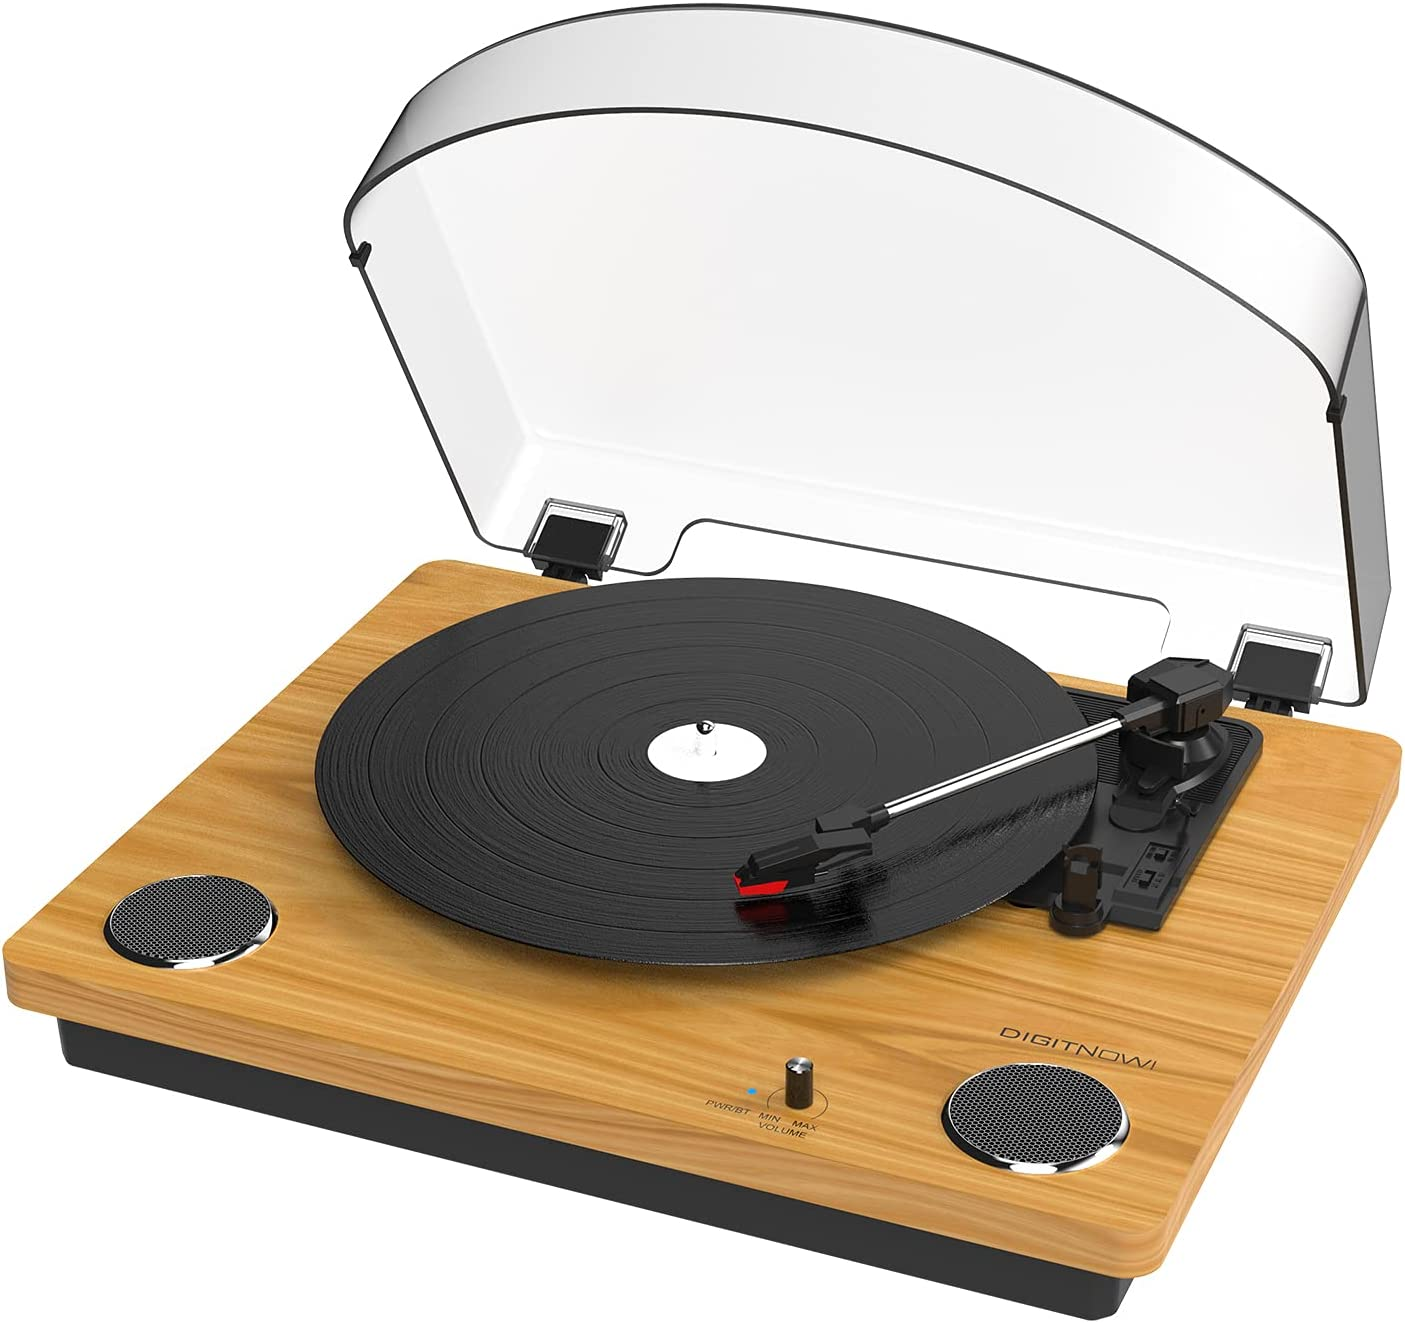 Vinyl Turntable Record Player Max 43% OFF Receiver Low price Bluetooth Built-in with